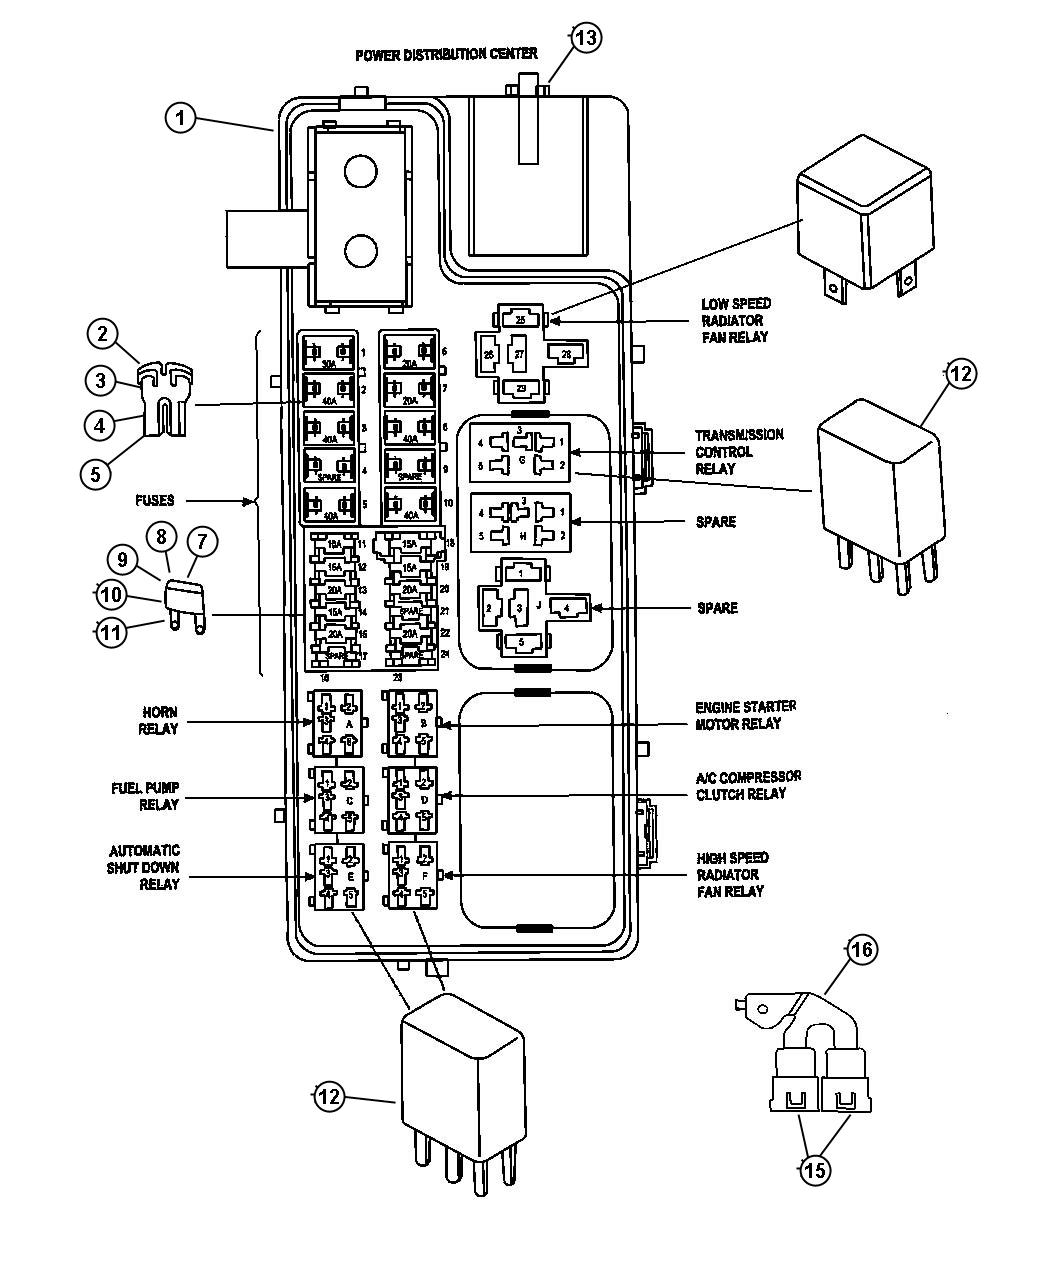 Wrg Compressor Clutch Relay Wiring Diagram